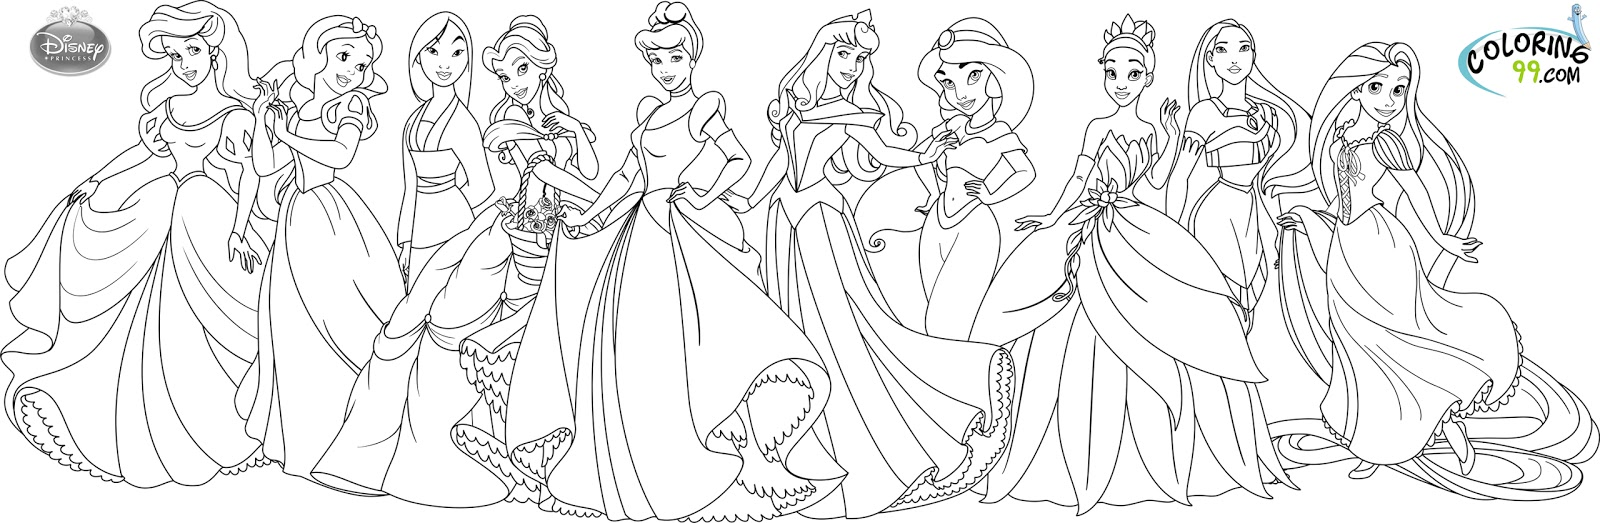 coloring pages of disney princesses - photo#9